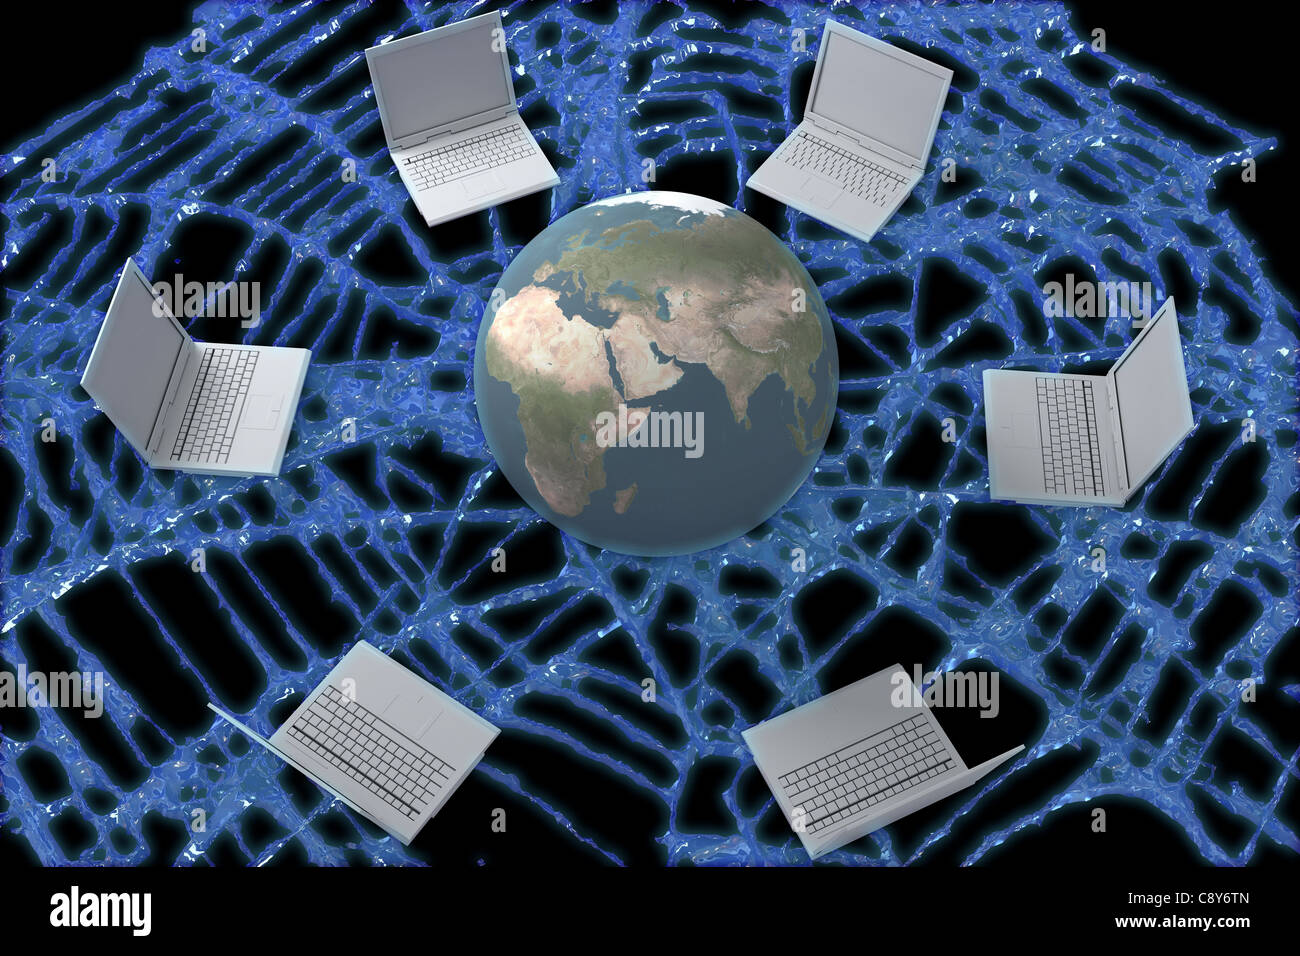 World Wide Web concept - Stock Image